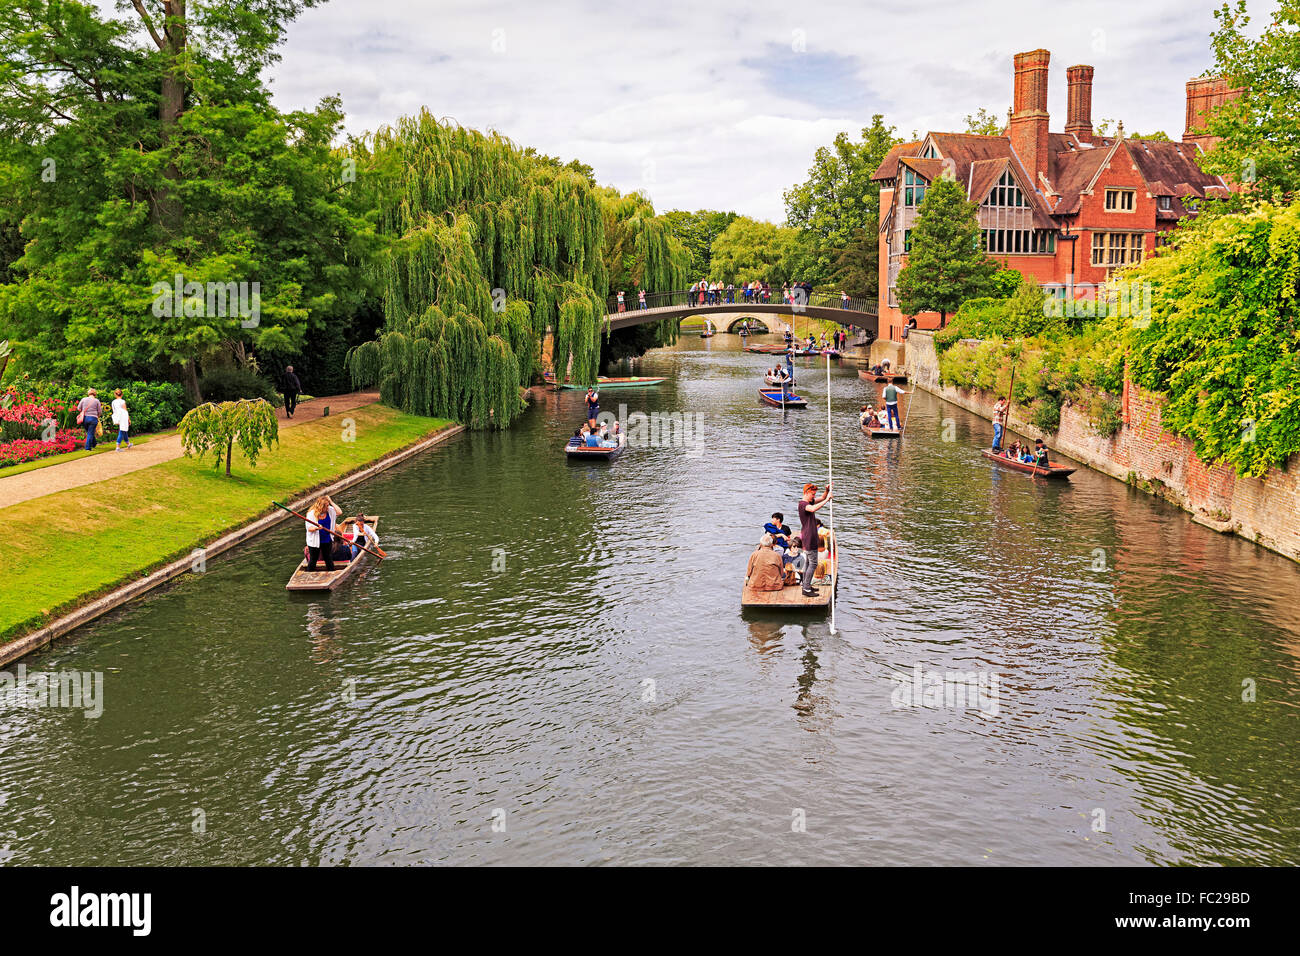 Punting on the River Cam, Cambridge, Cambridgeshire, England, United Kingdom - Stock Image